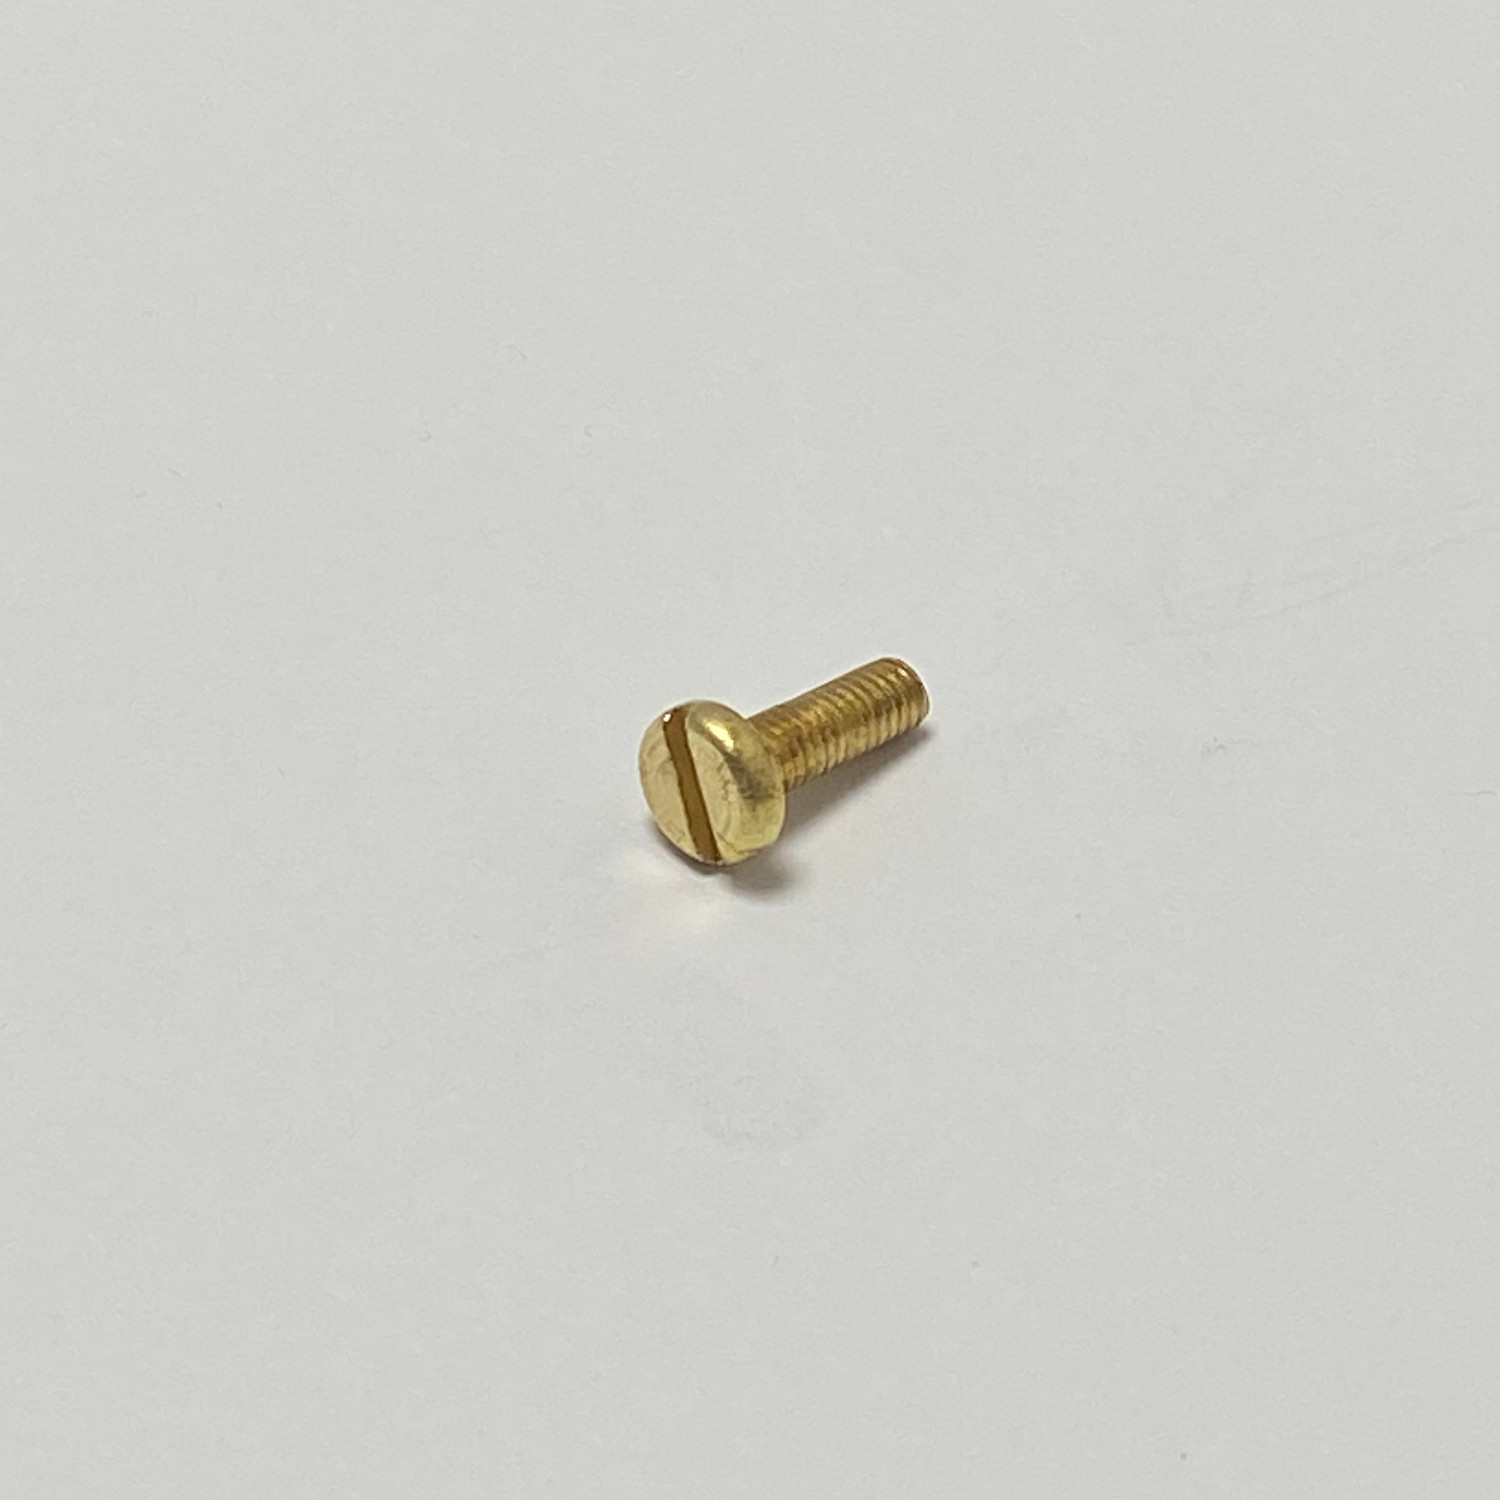 M3 X 5 BRASS SLOTTED CHEESE SCREWS